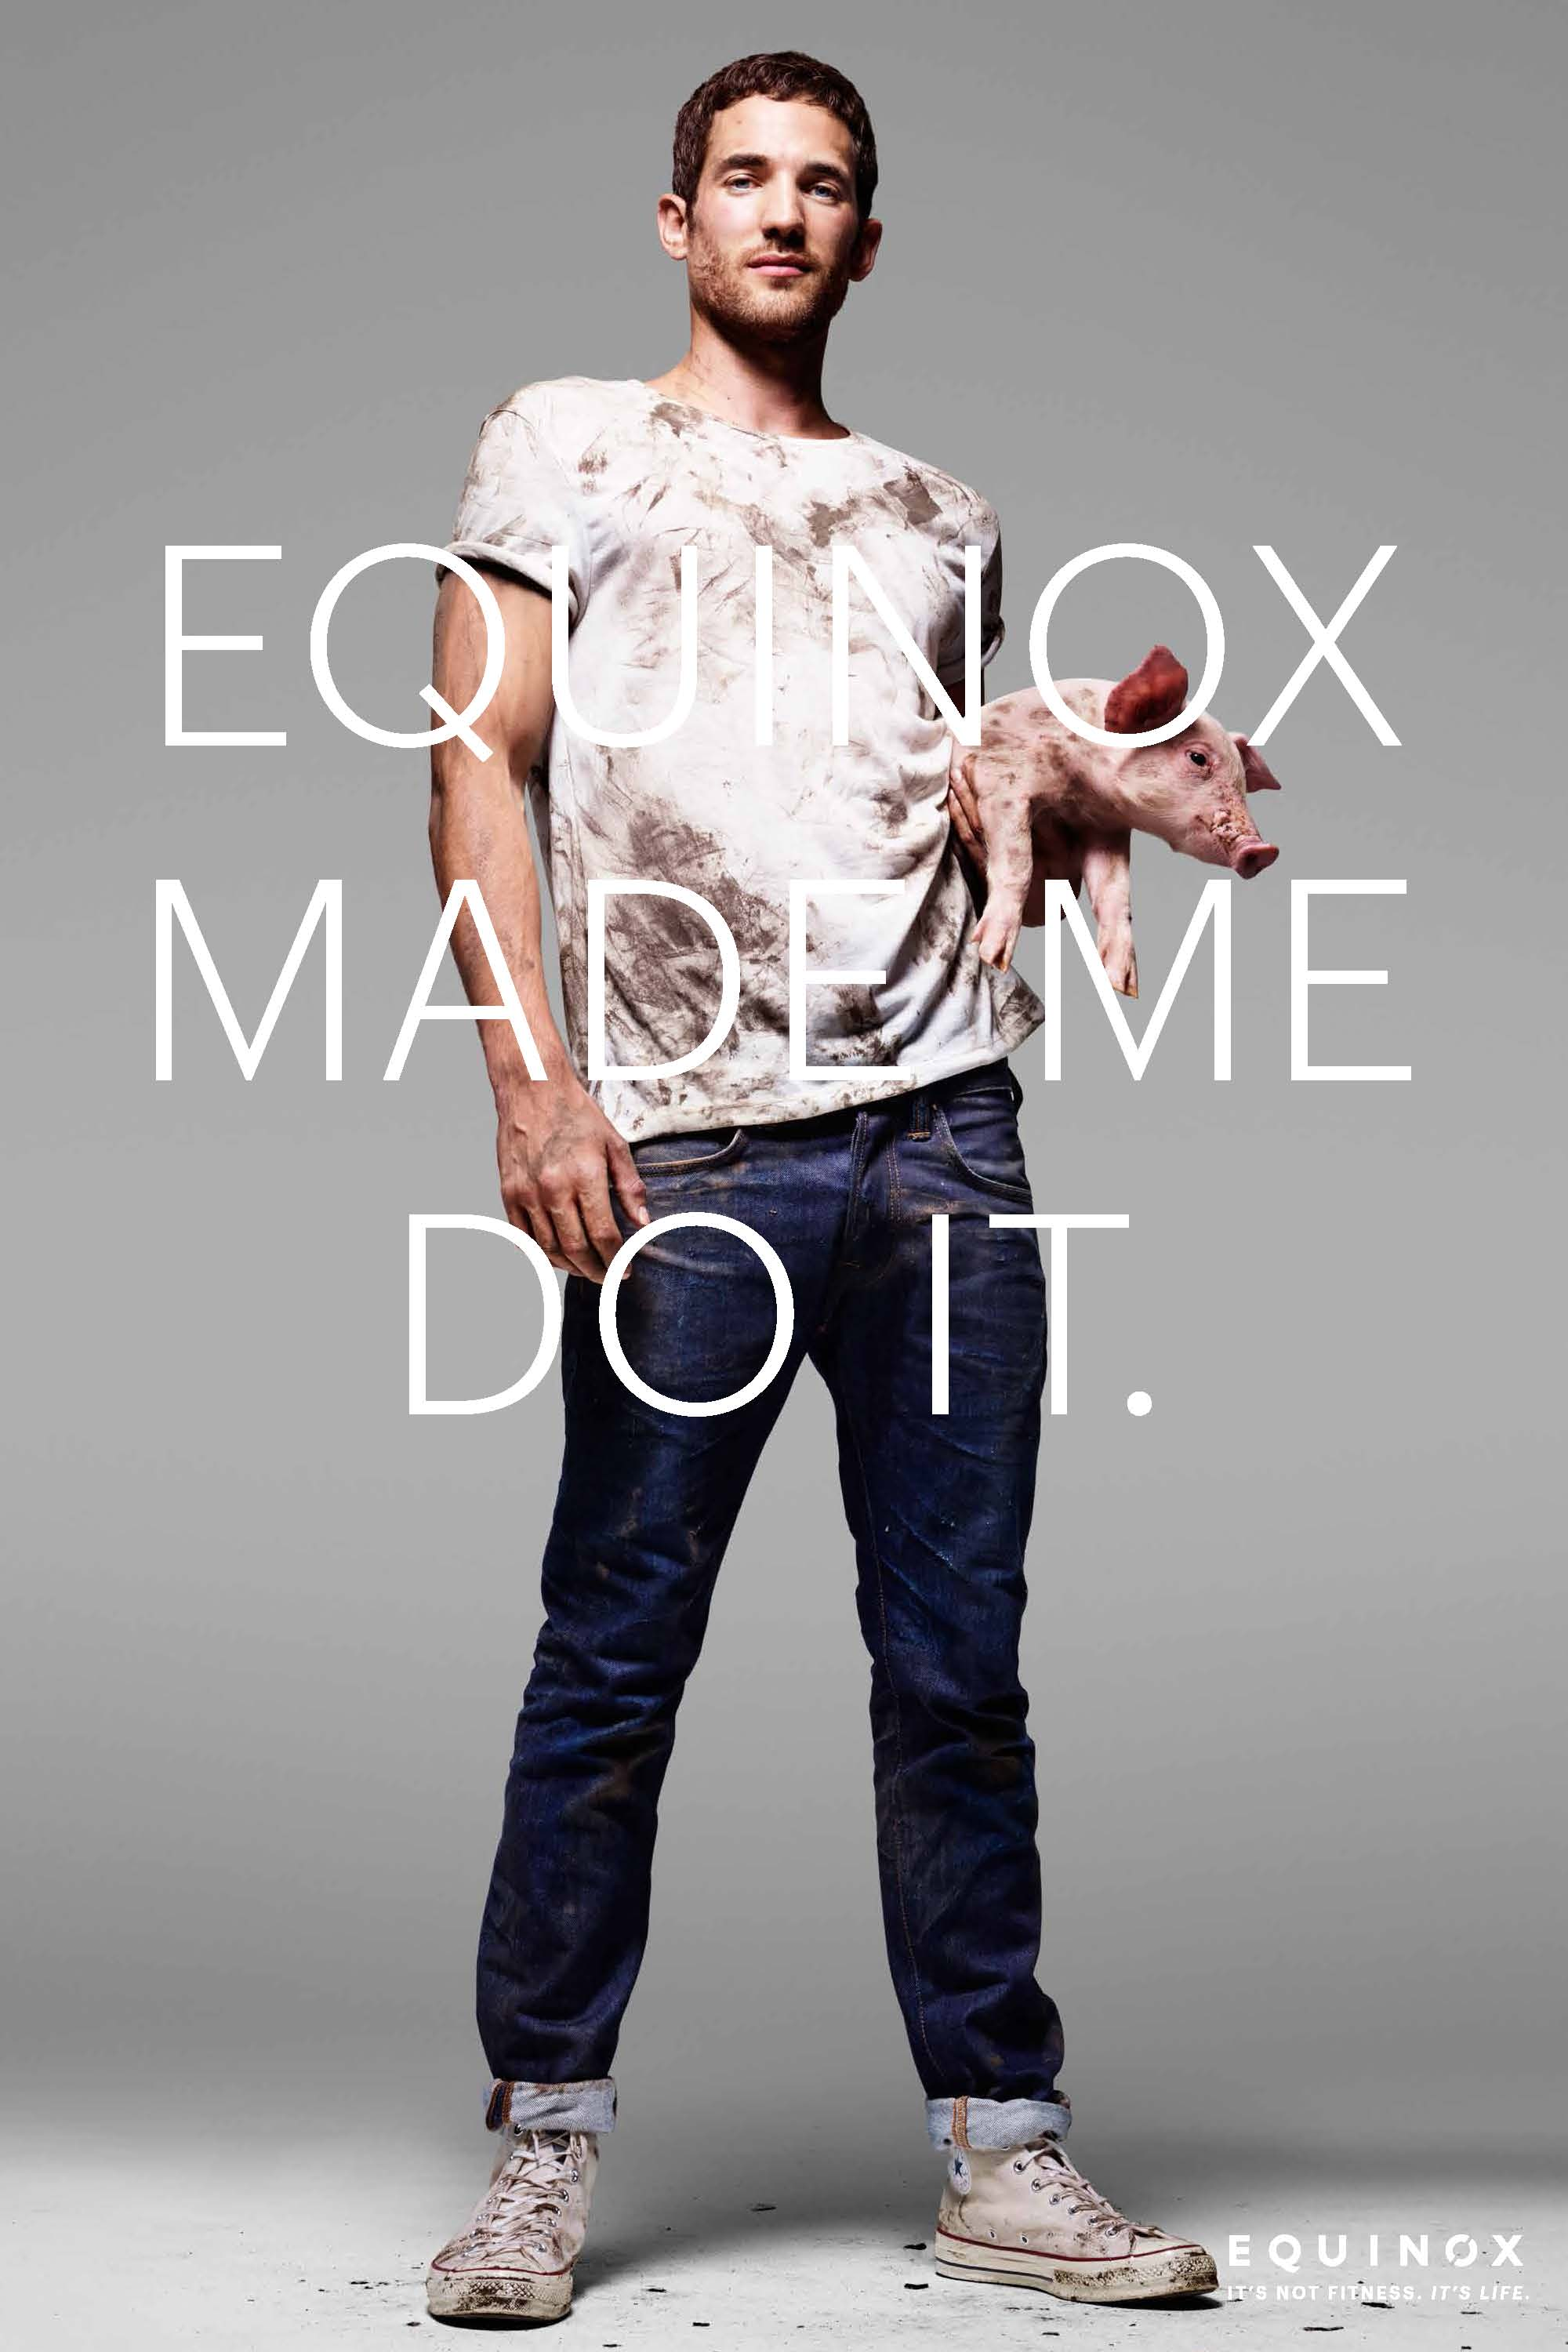 Max Rogers Poses with Dirty Piglet for Equinox Campaign